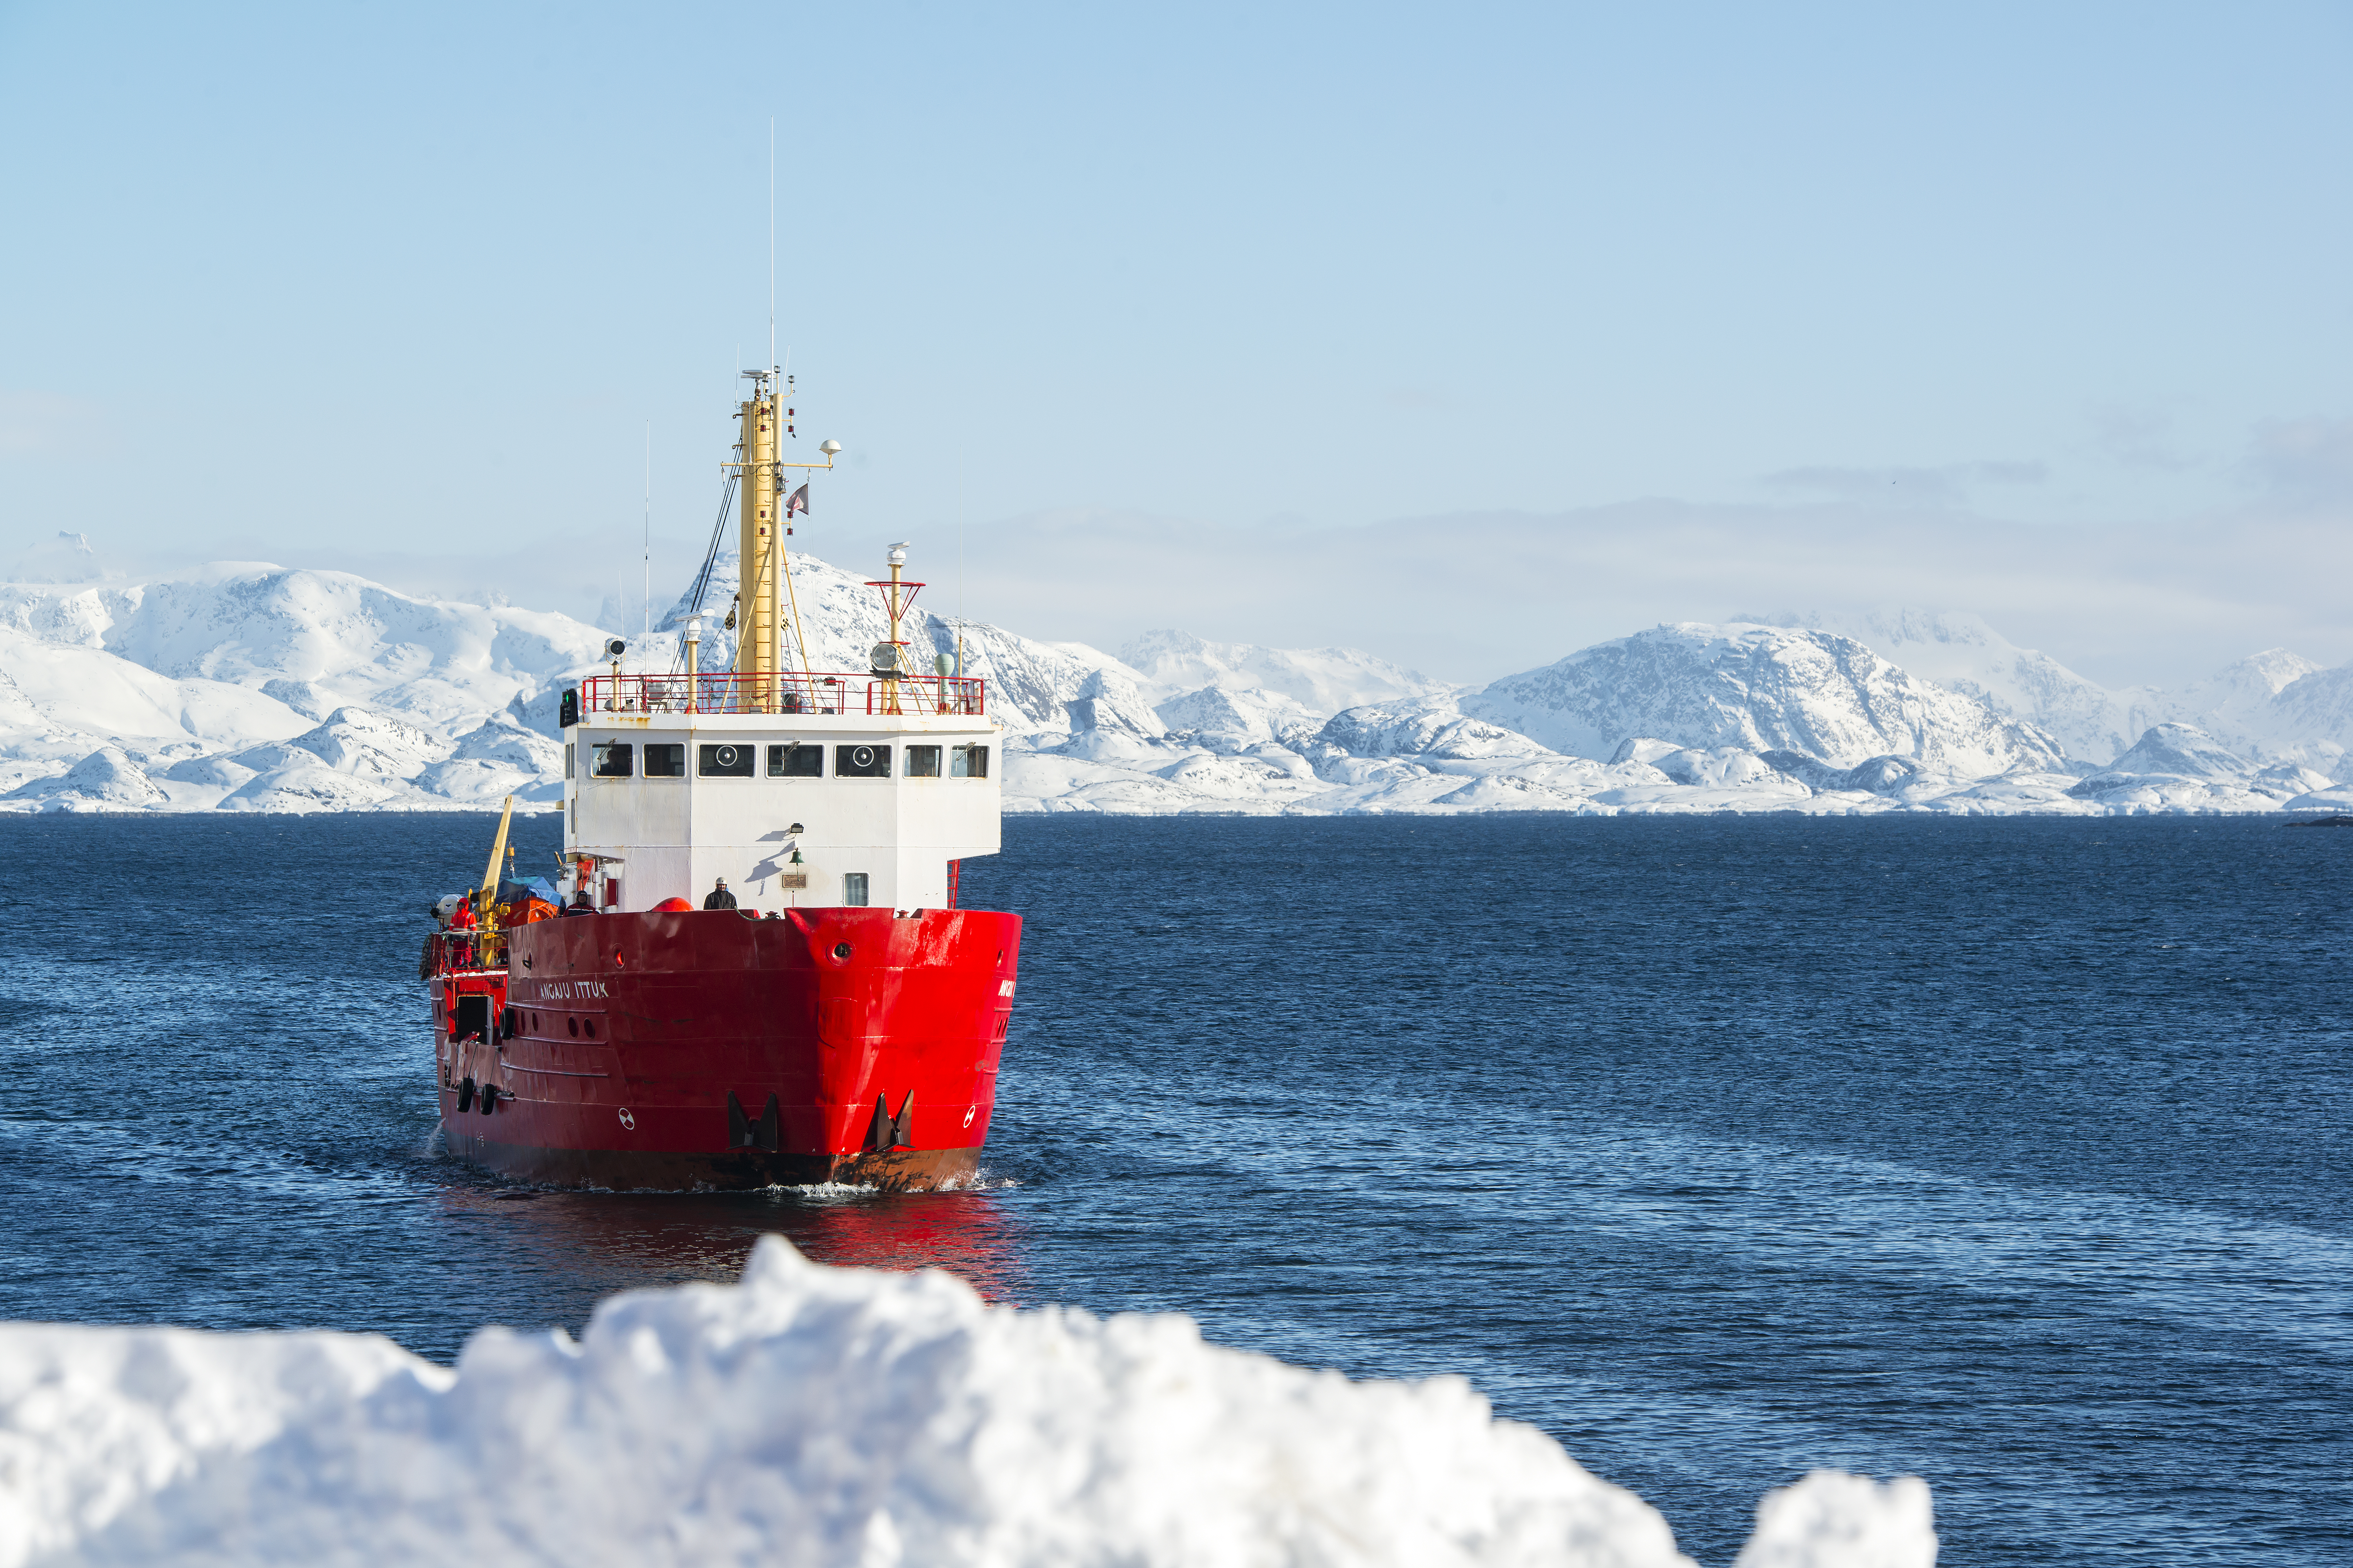 IMO says it will address Arctic heavy fuel oil regulation